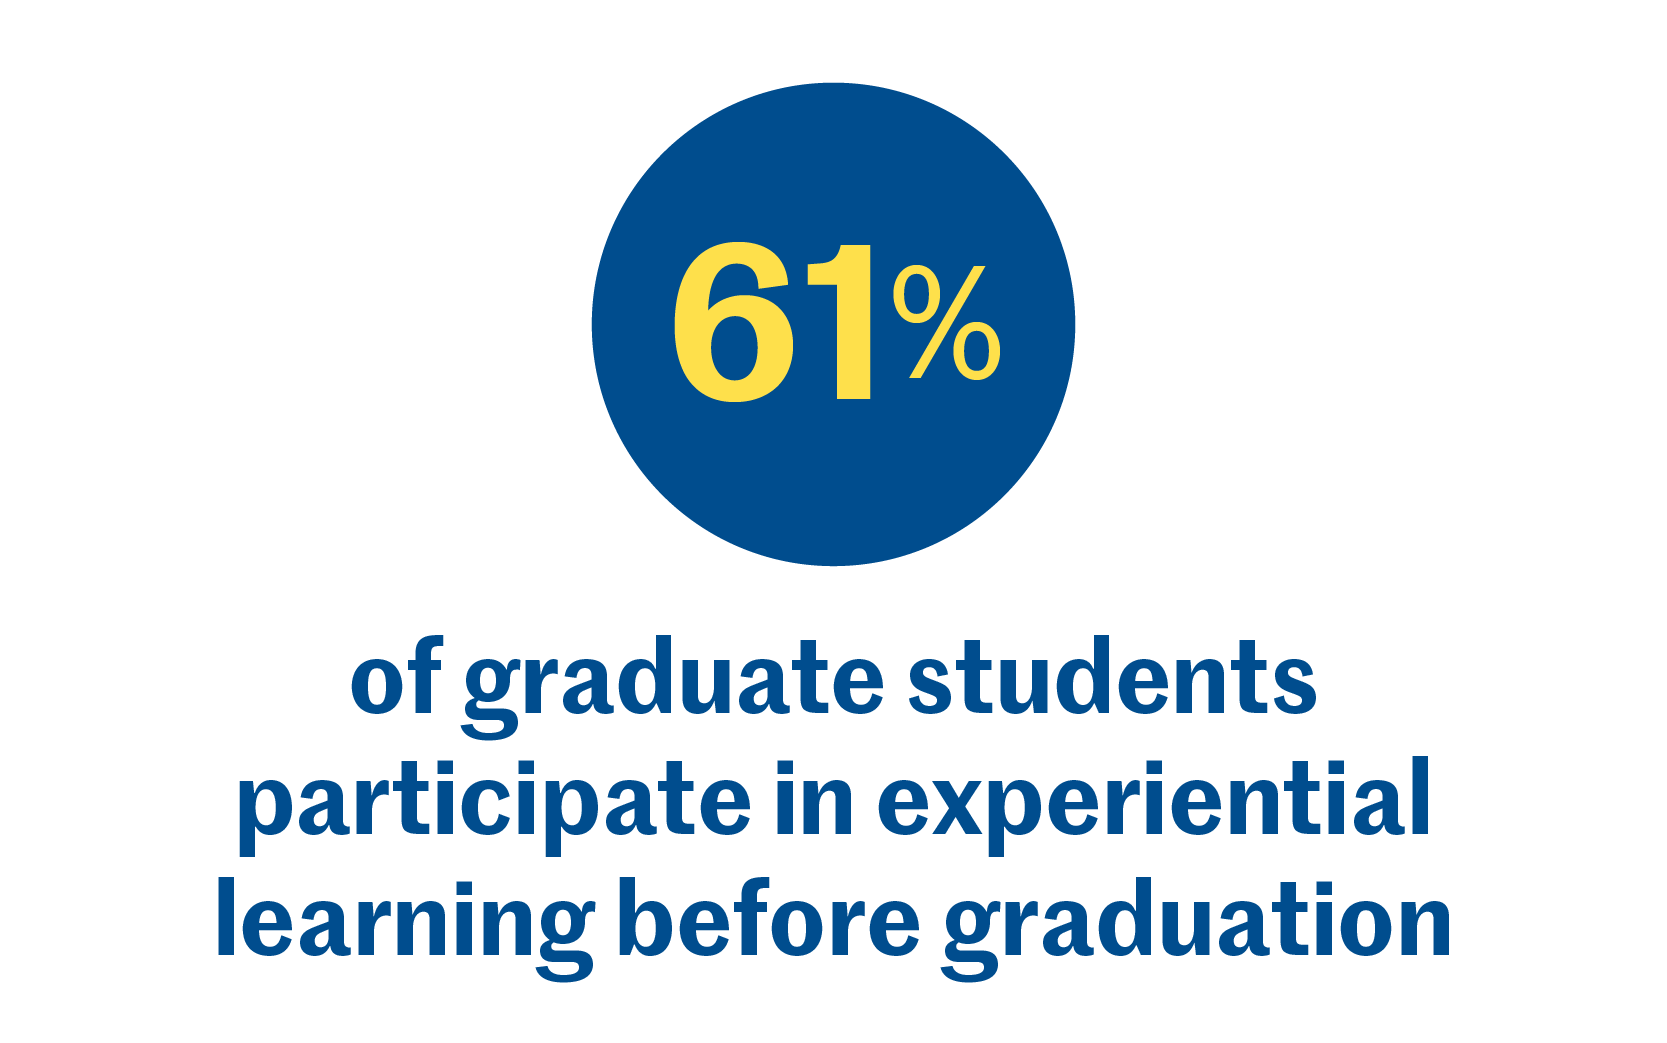 61% of graduate students participate in experiential learning before graduation